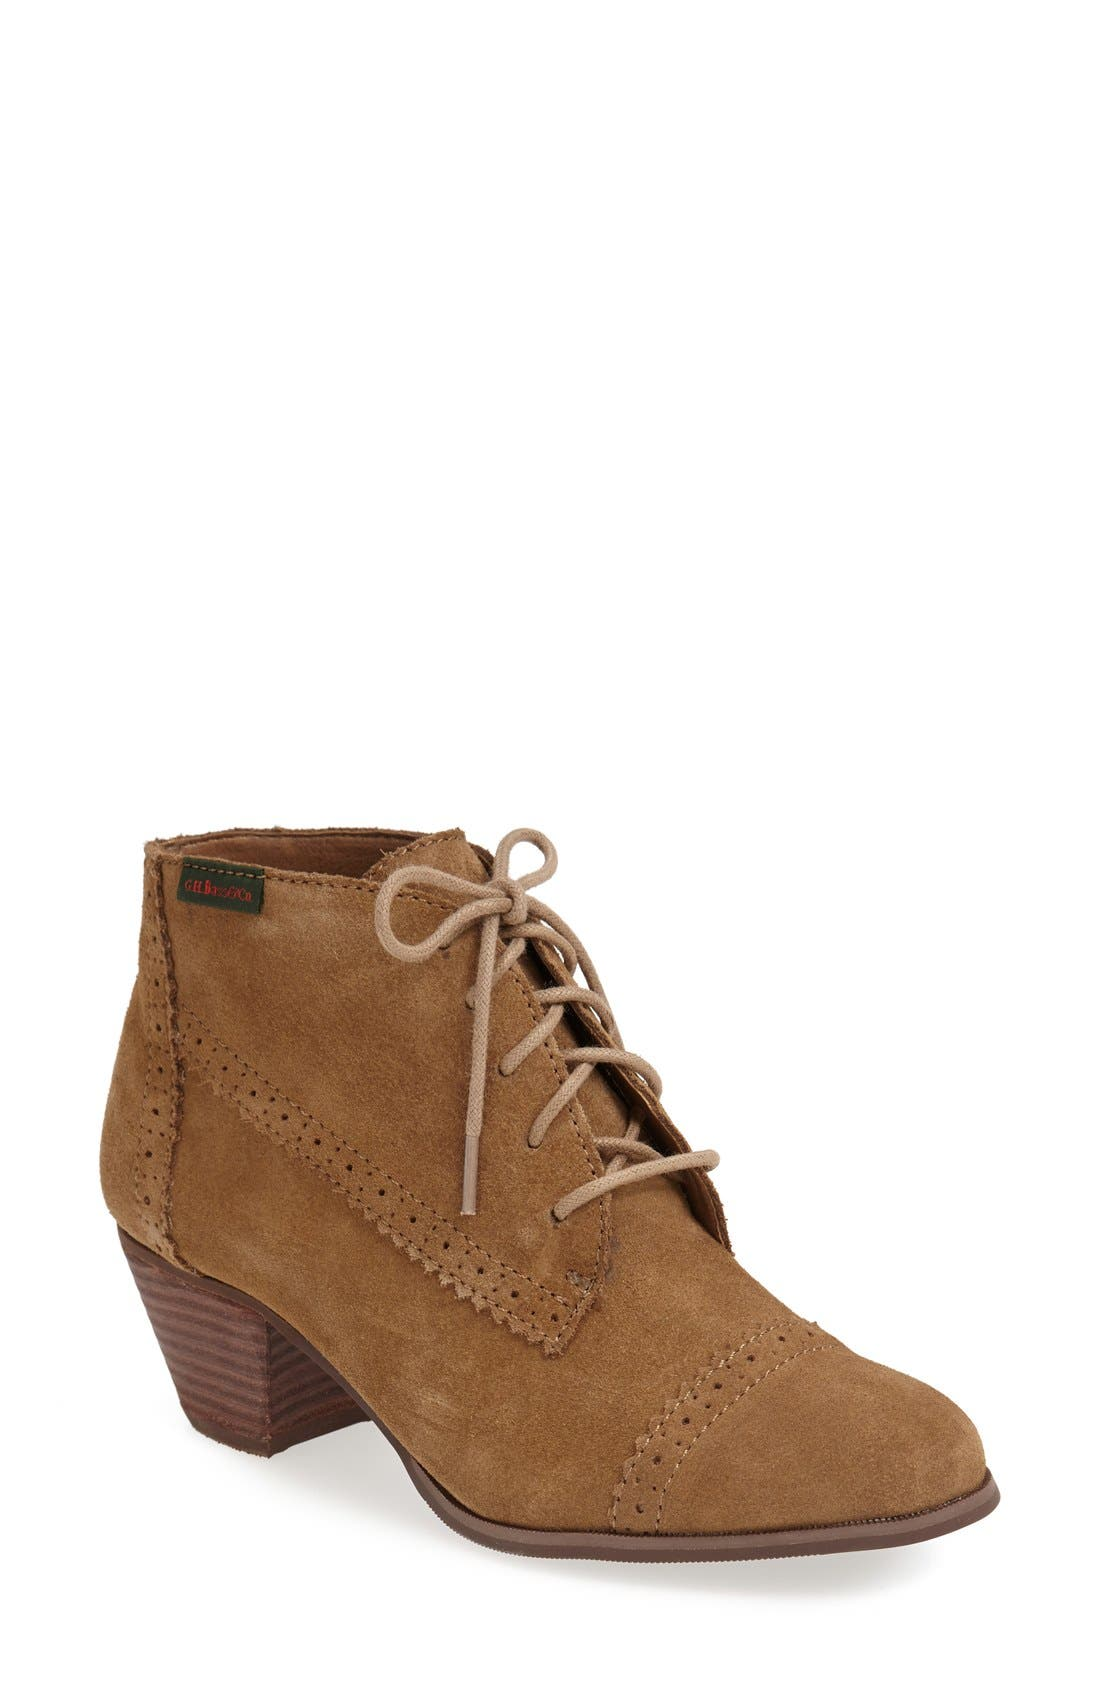 Alternate Image 1 Selected - G.H. Bass & Co. 'Porter' Suede Bootie (Women)